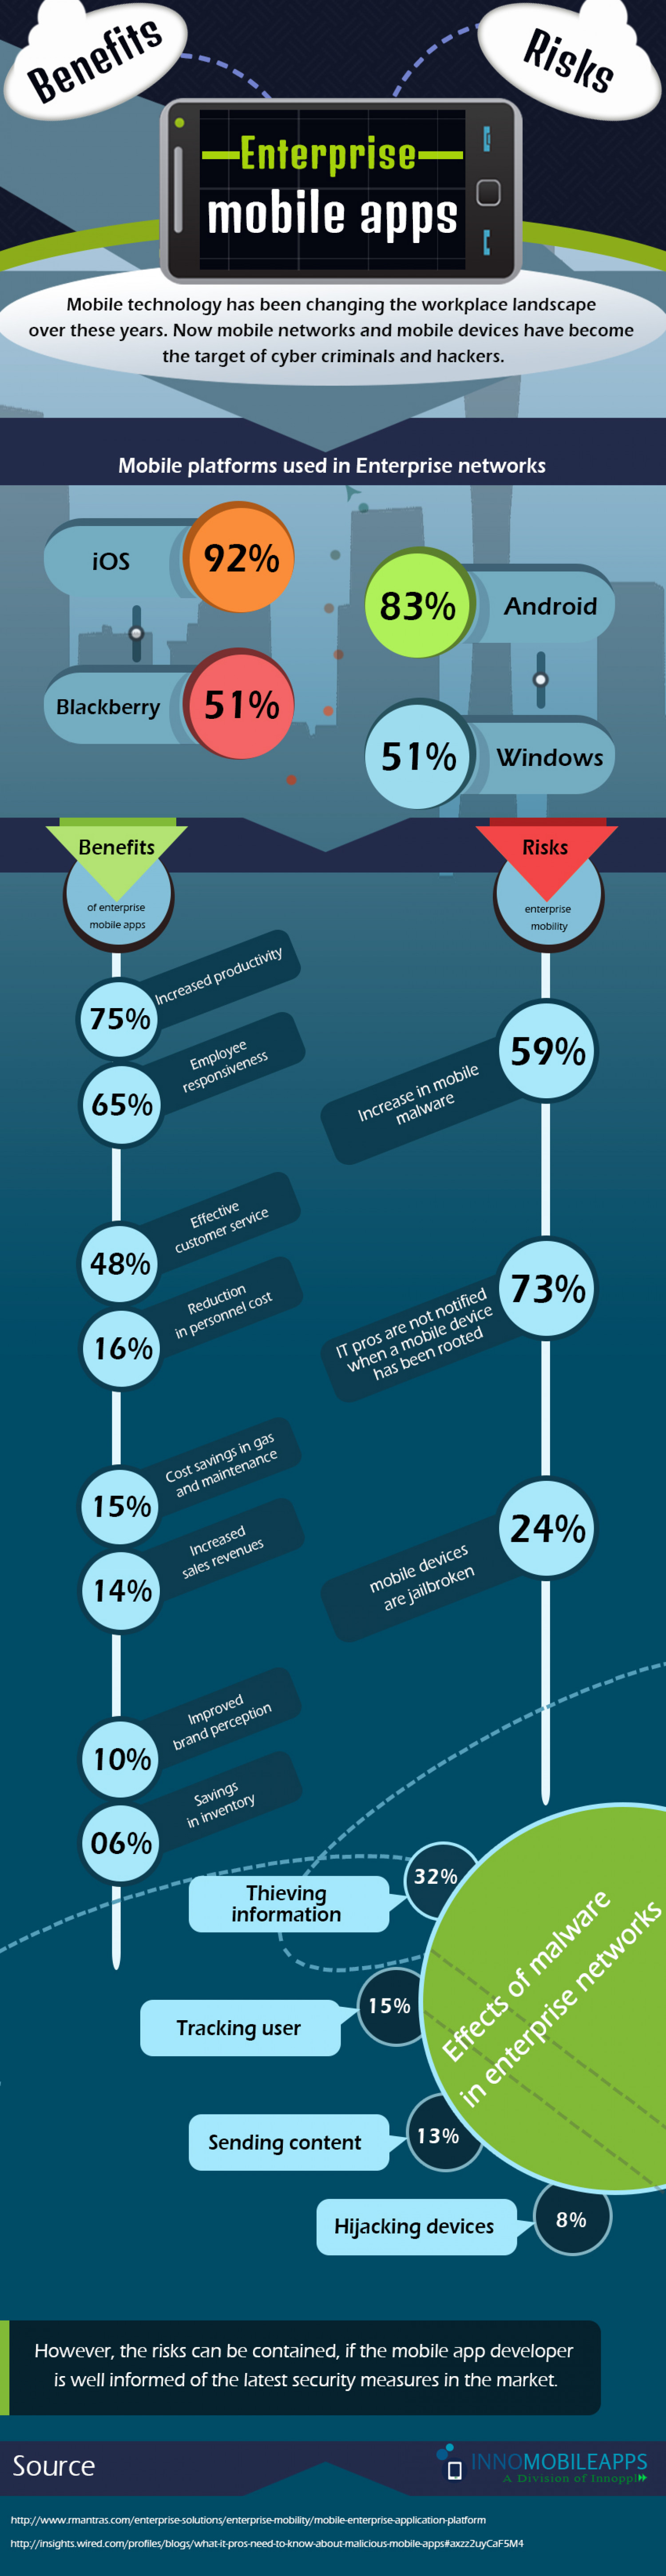 Benefits and Risks of Enterprise Mobile Apps Infographic